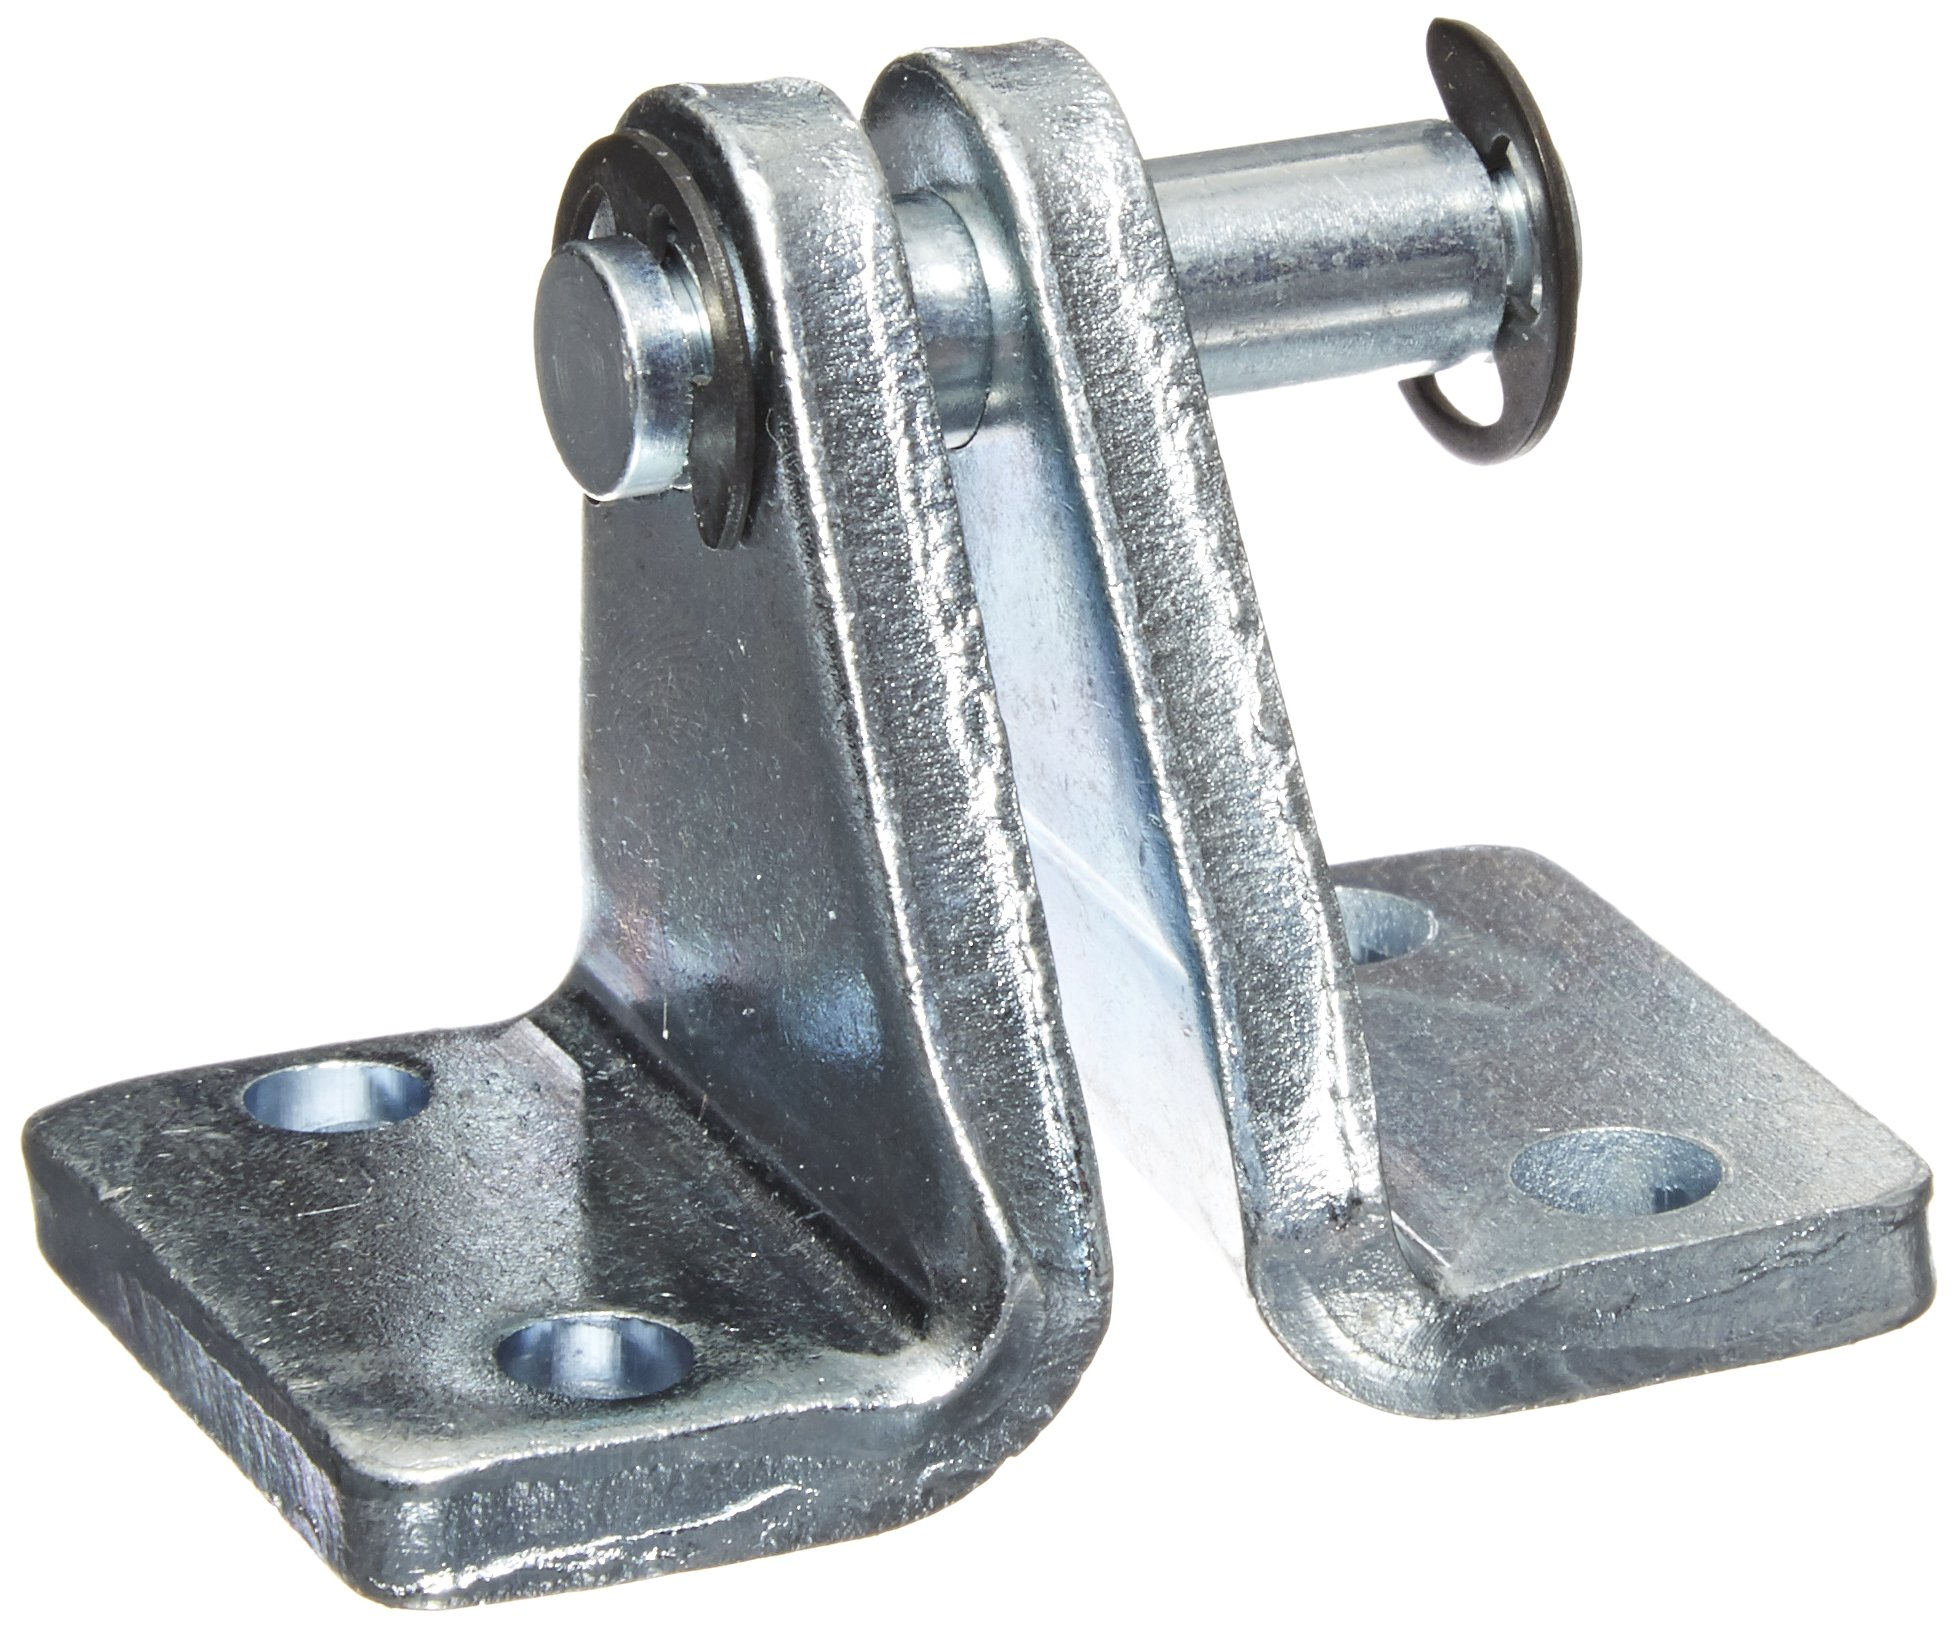 Parker L071320500  Pivot Bracket, Universal or Rear Pivot Mount for 2'', 2-1/2'' Bore